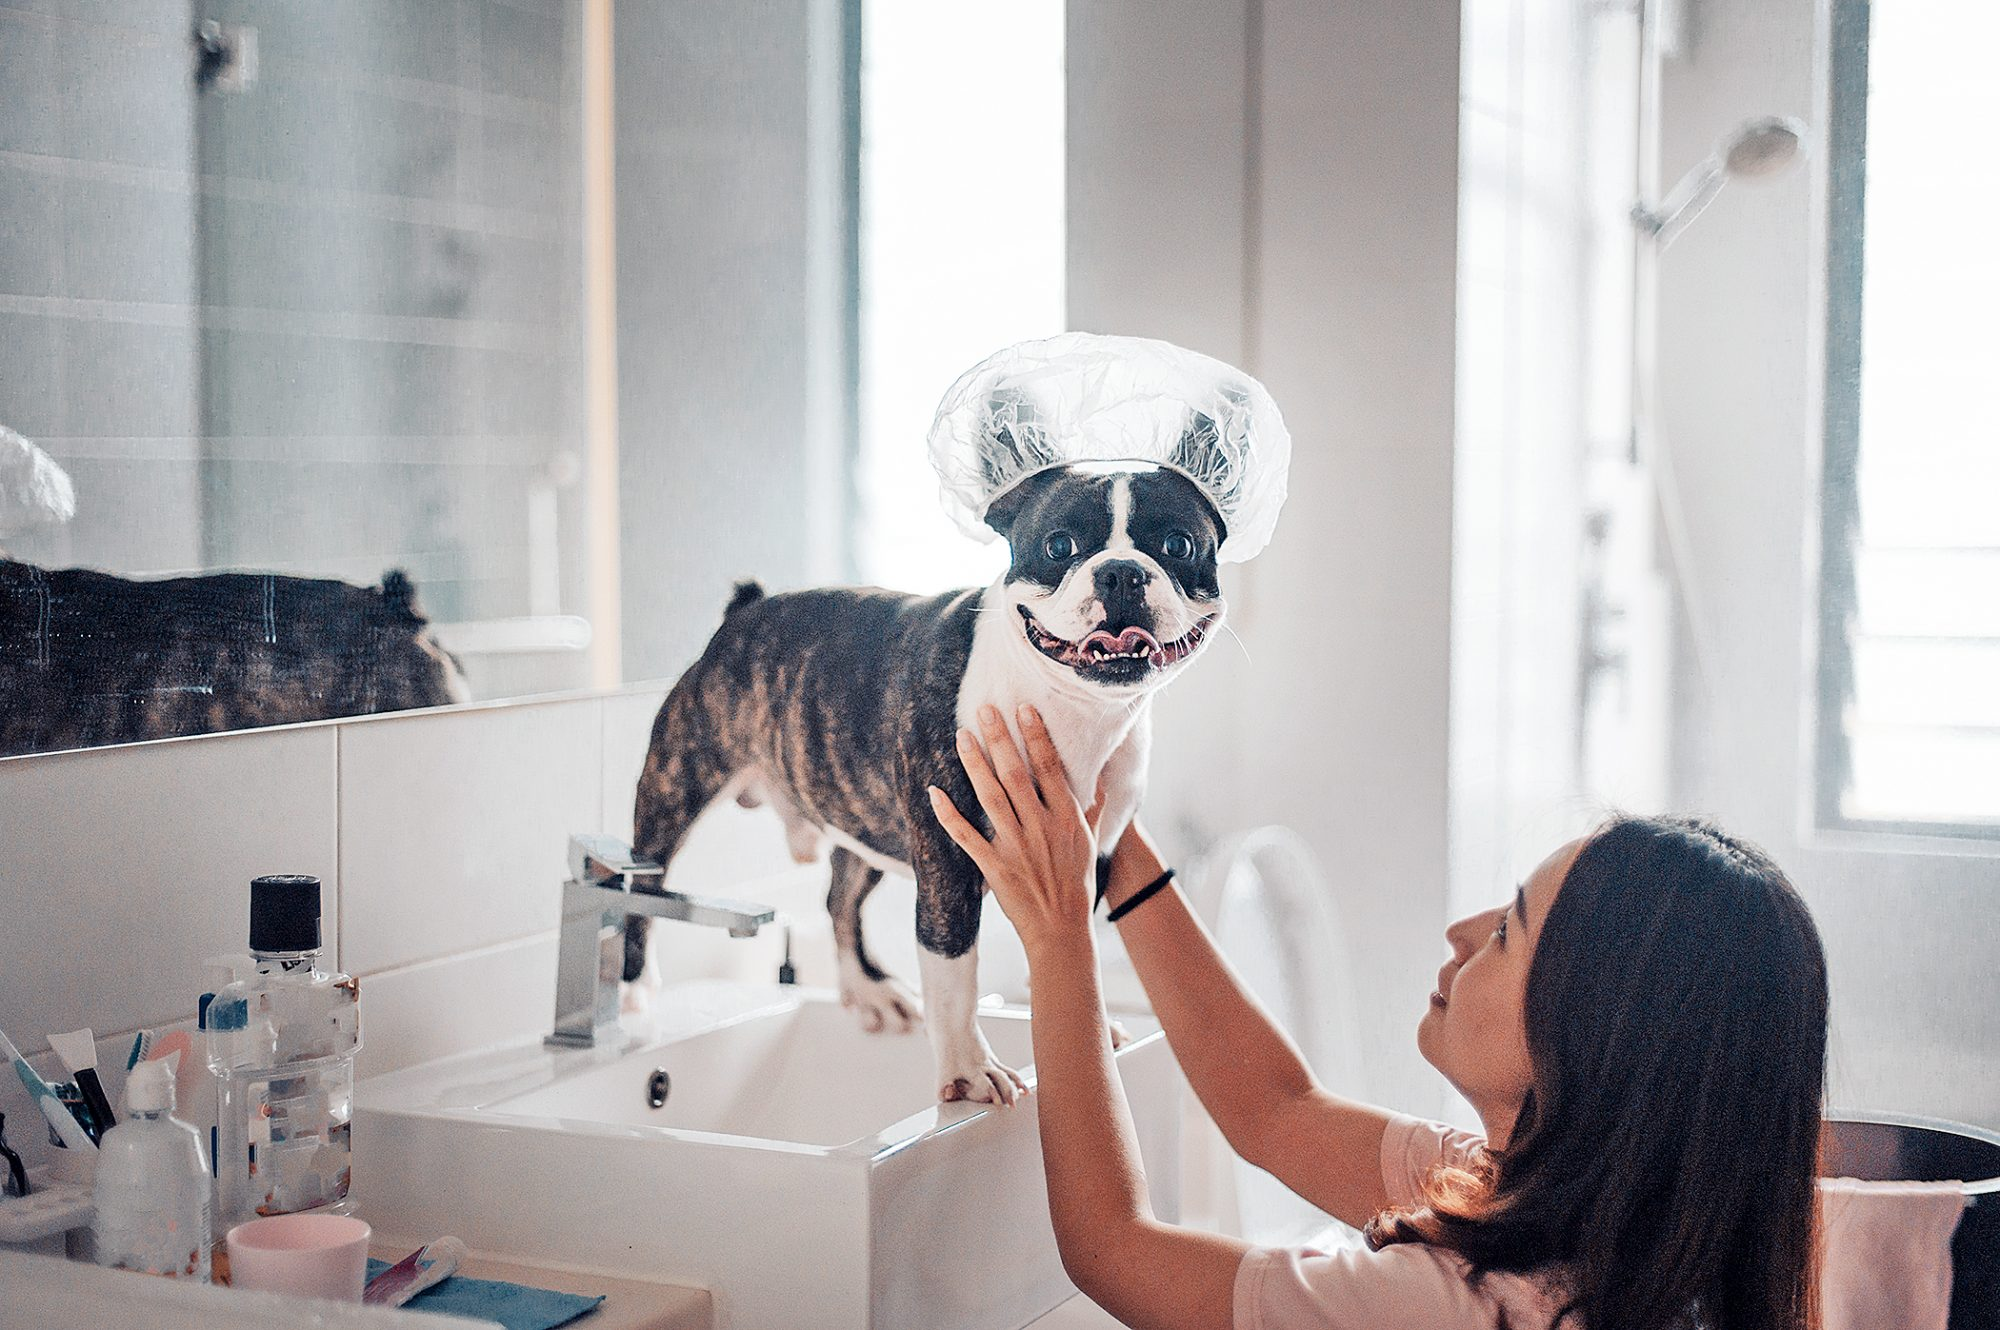 pampered dog living his best life wearing shower cap, getting ready for his bath